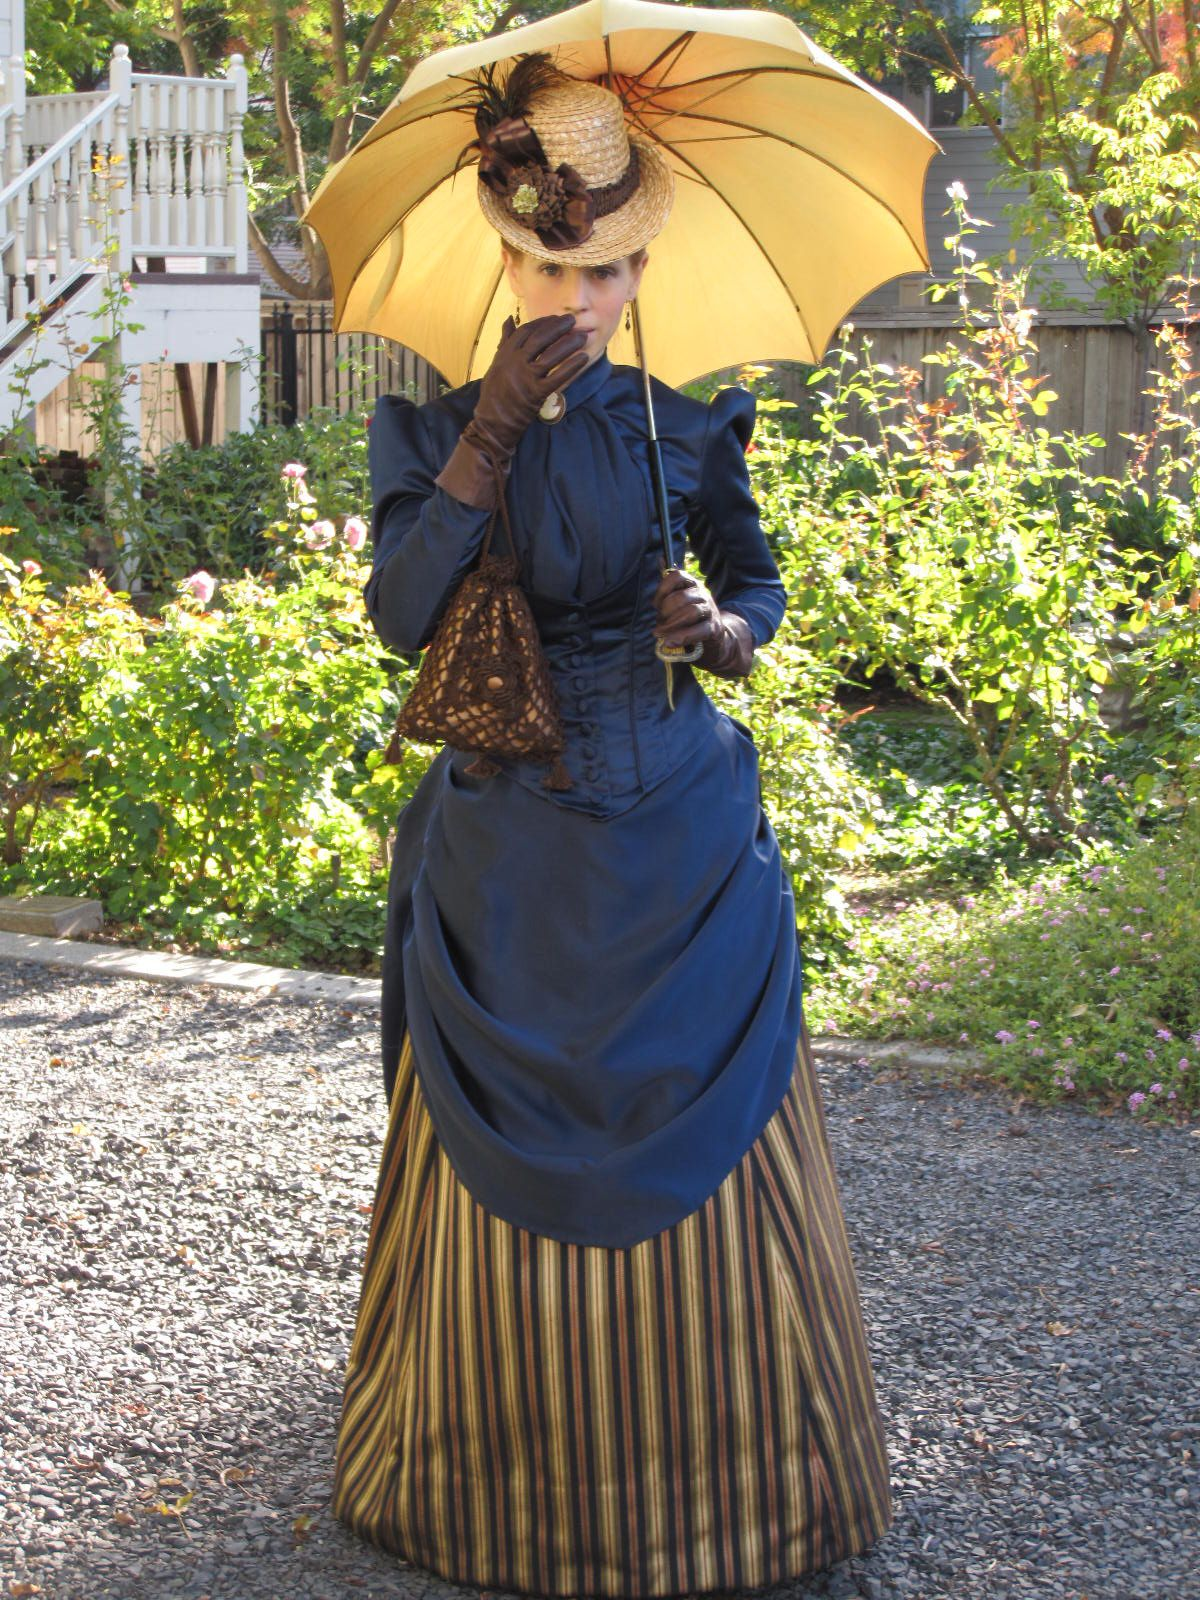 27 Excellent Victorian Steampunk Costumes For Women To Inspire You - Steampunko #victoriandolls